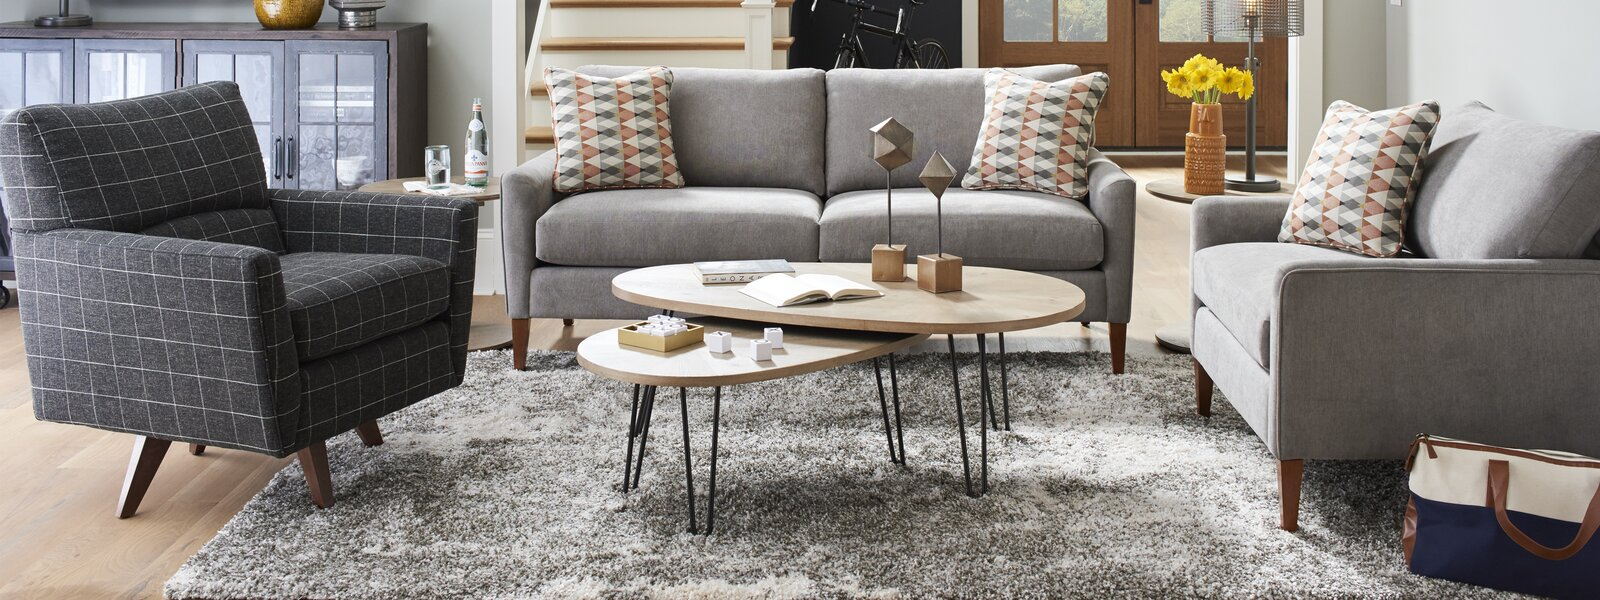 La Z Boy Wayfair for 14 Clever Ideas How to Makeover LaZBoy Living Room Set